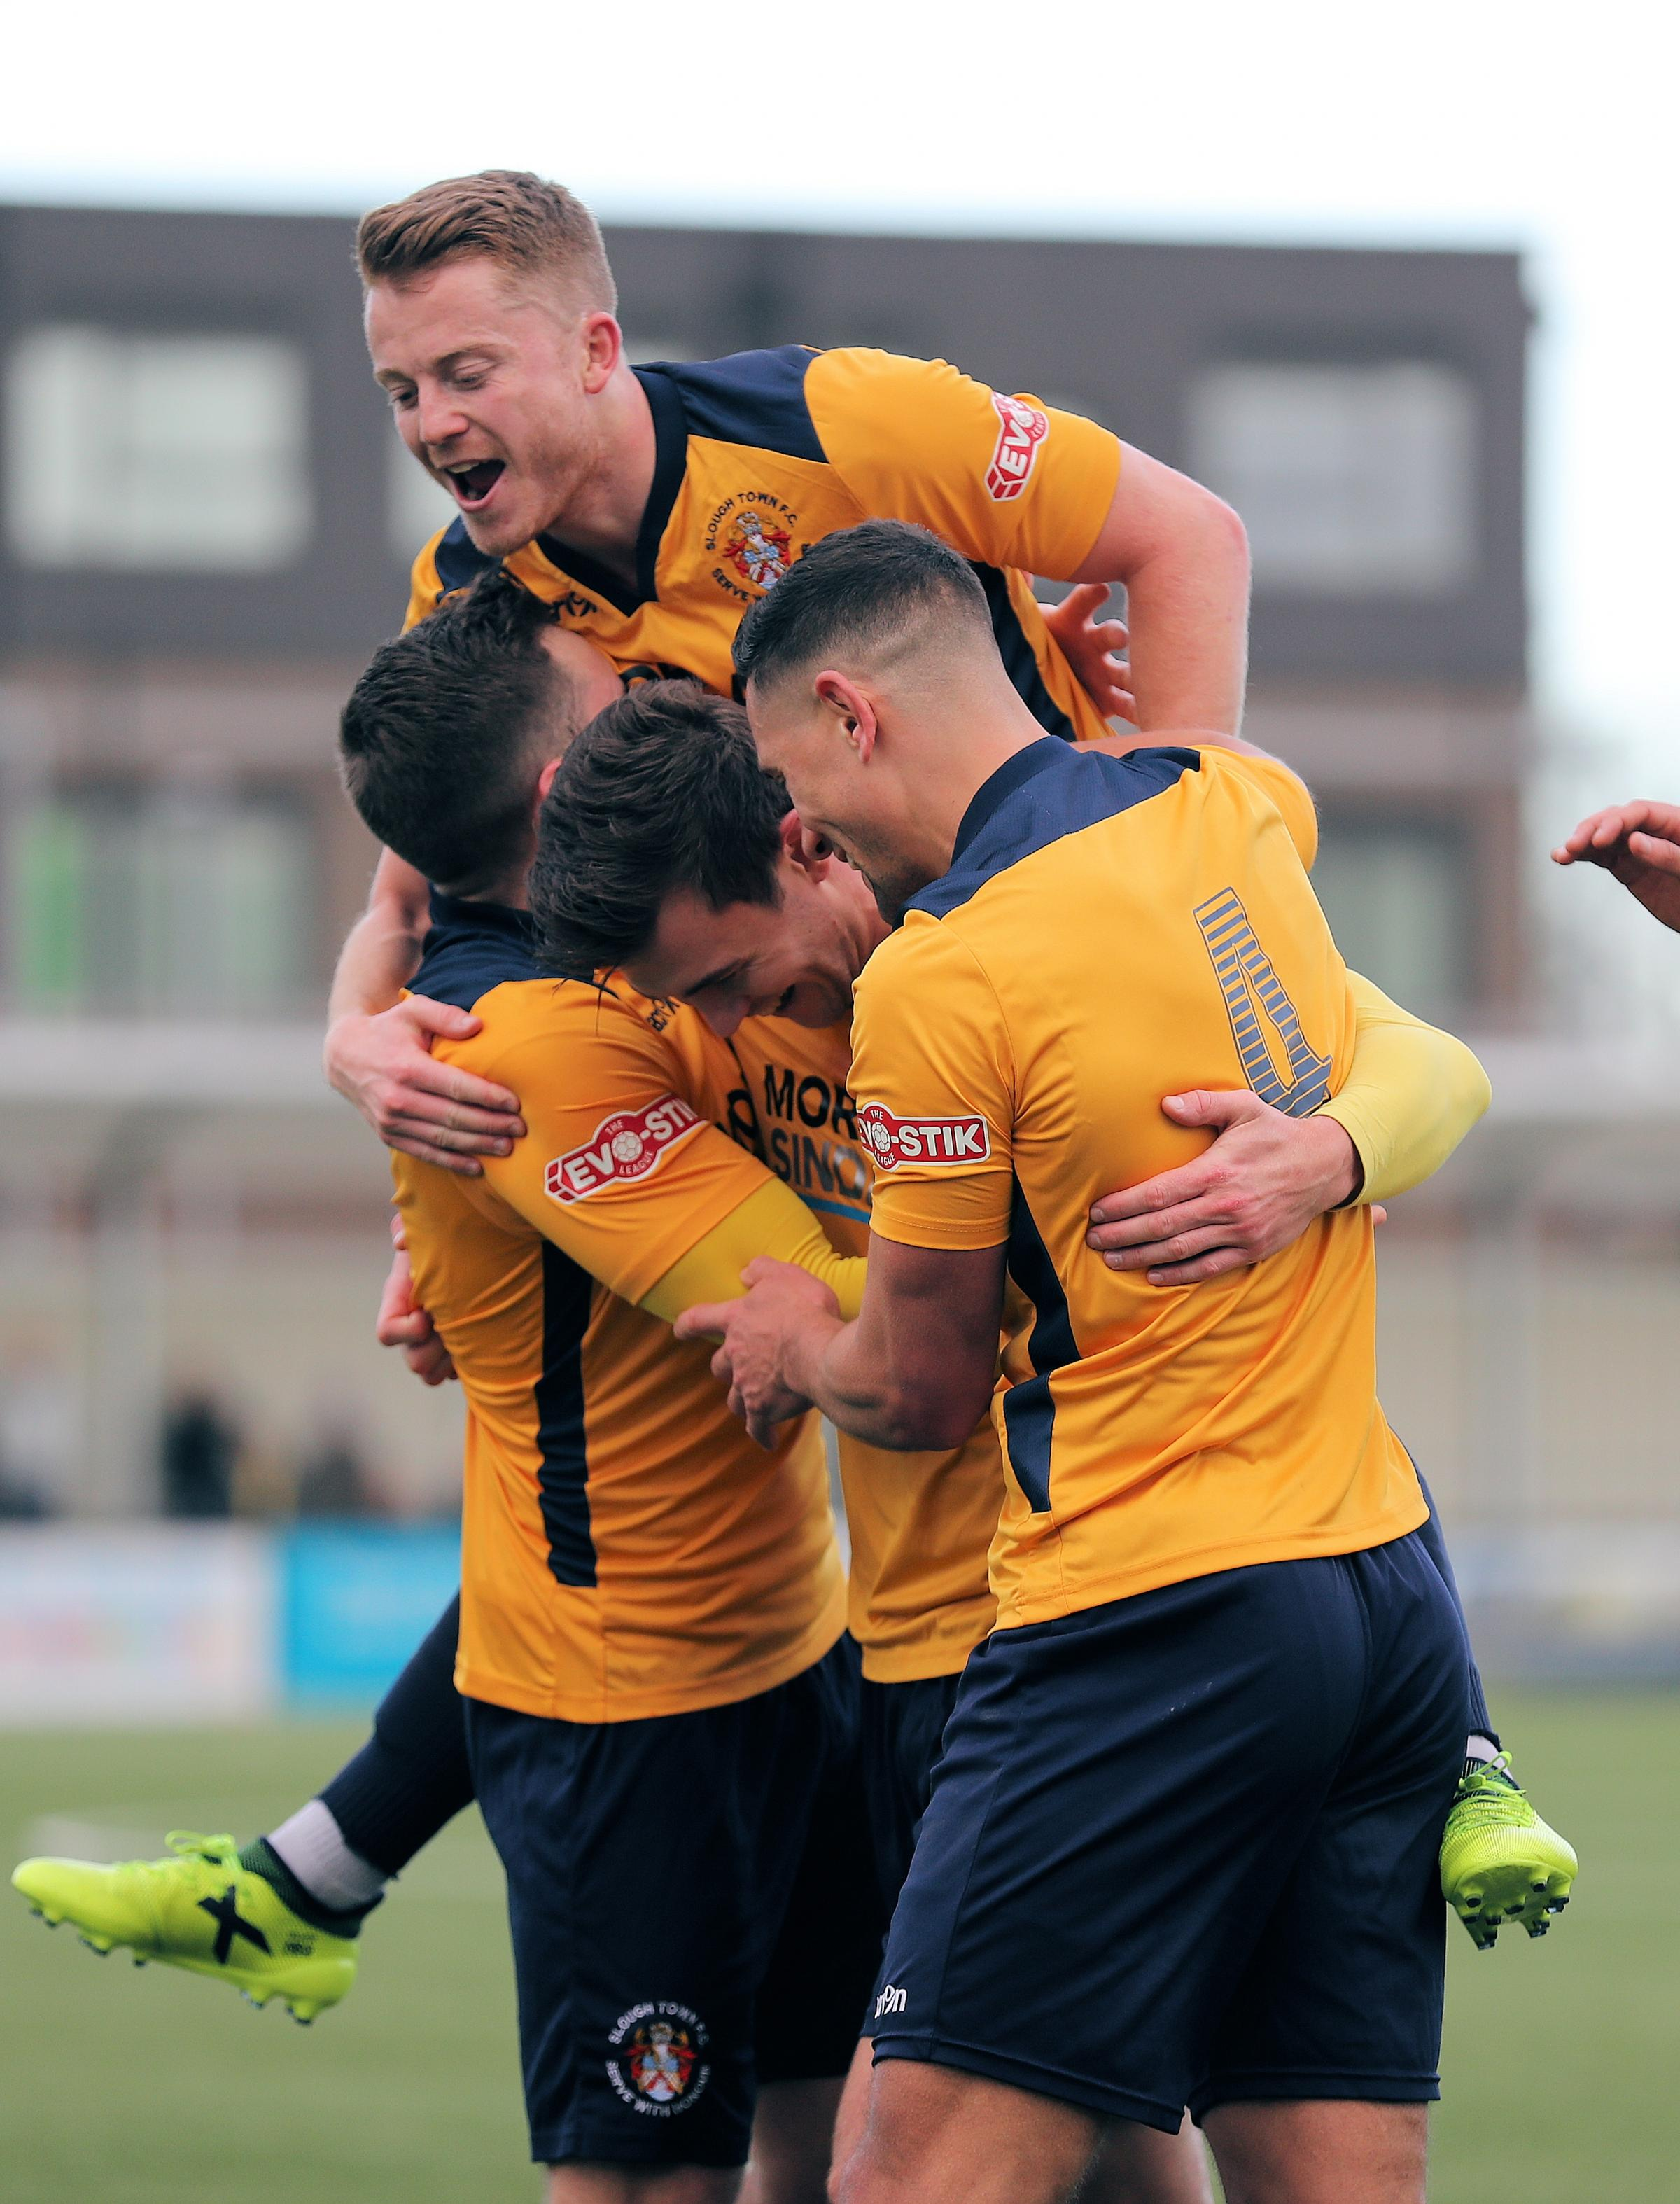 Slough Town celebrate one of their goals in the 5-1 win against Farnborough at Arbour Park on Boxing Day. PHOTOS: Gary House Photography.